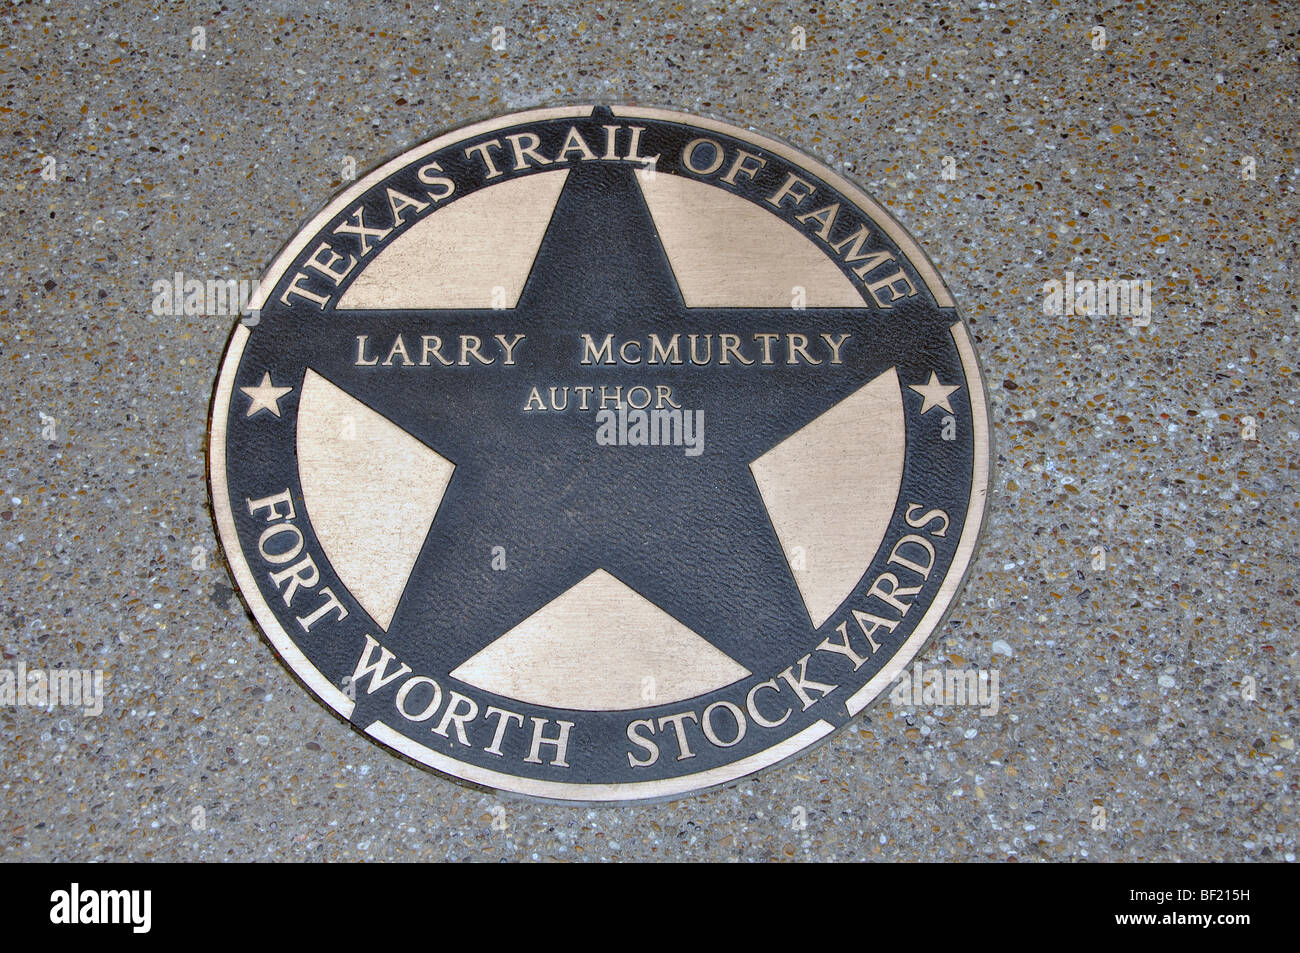 Larry McMurtry Hall of Fame star, Fort Worth, Texas - Stock Image